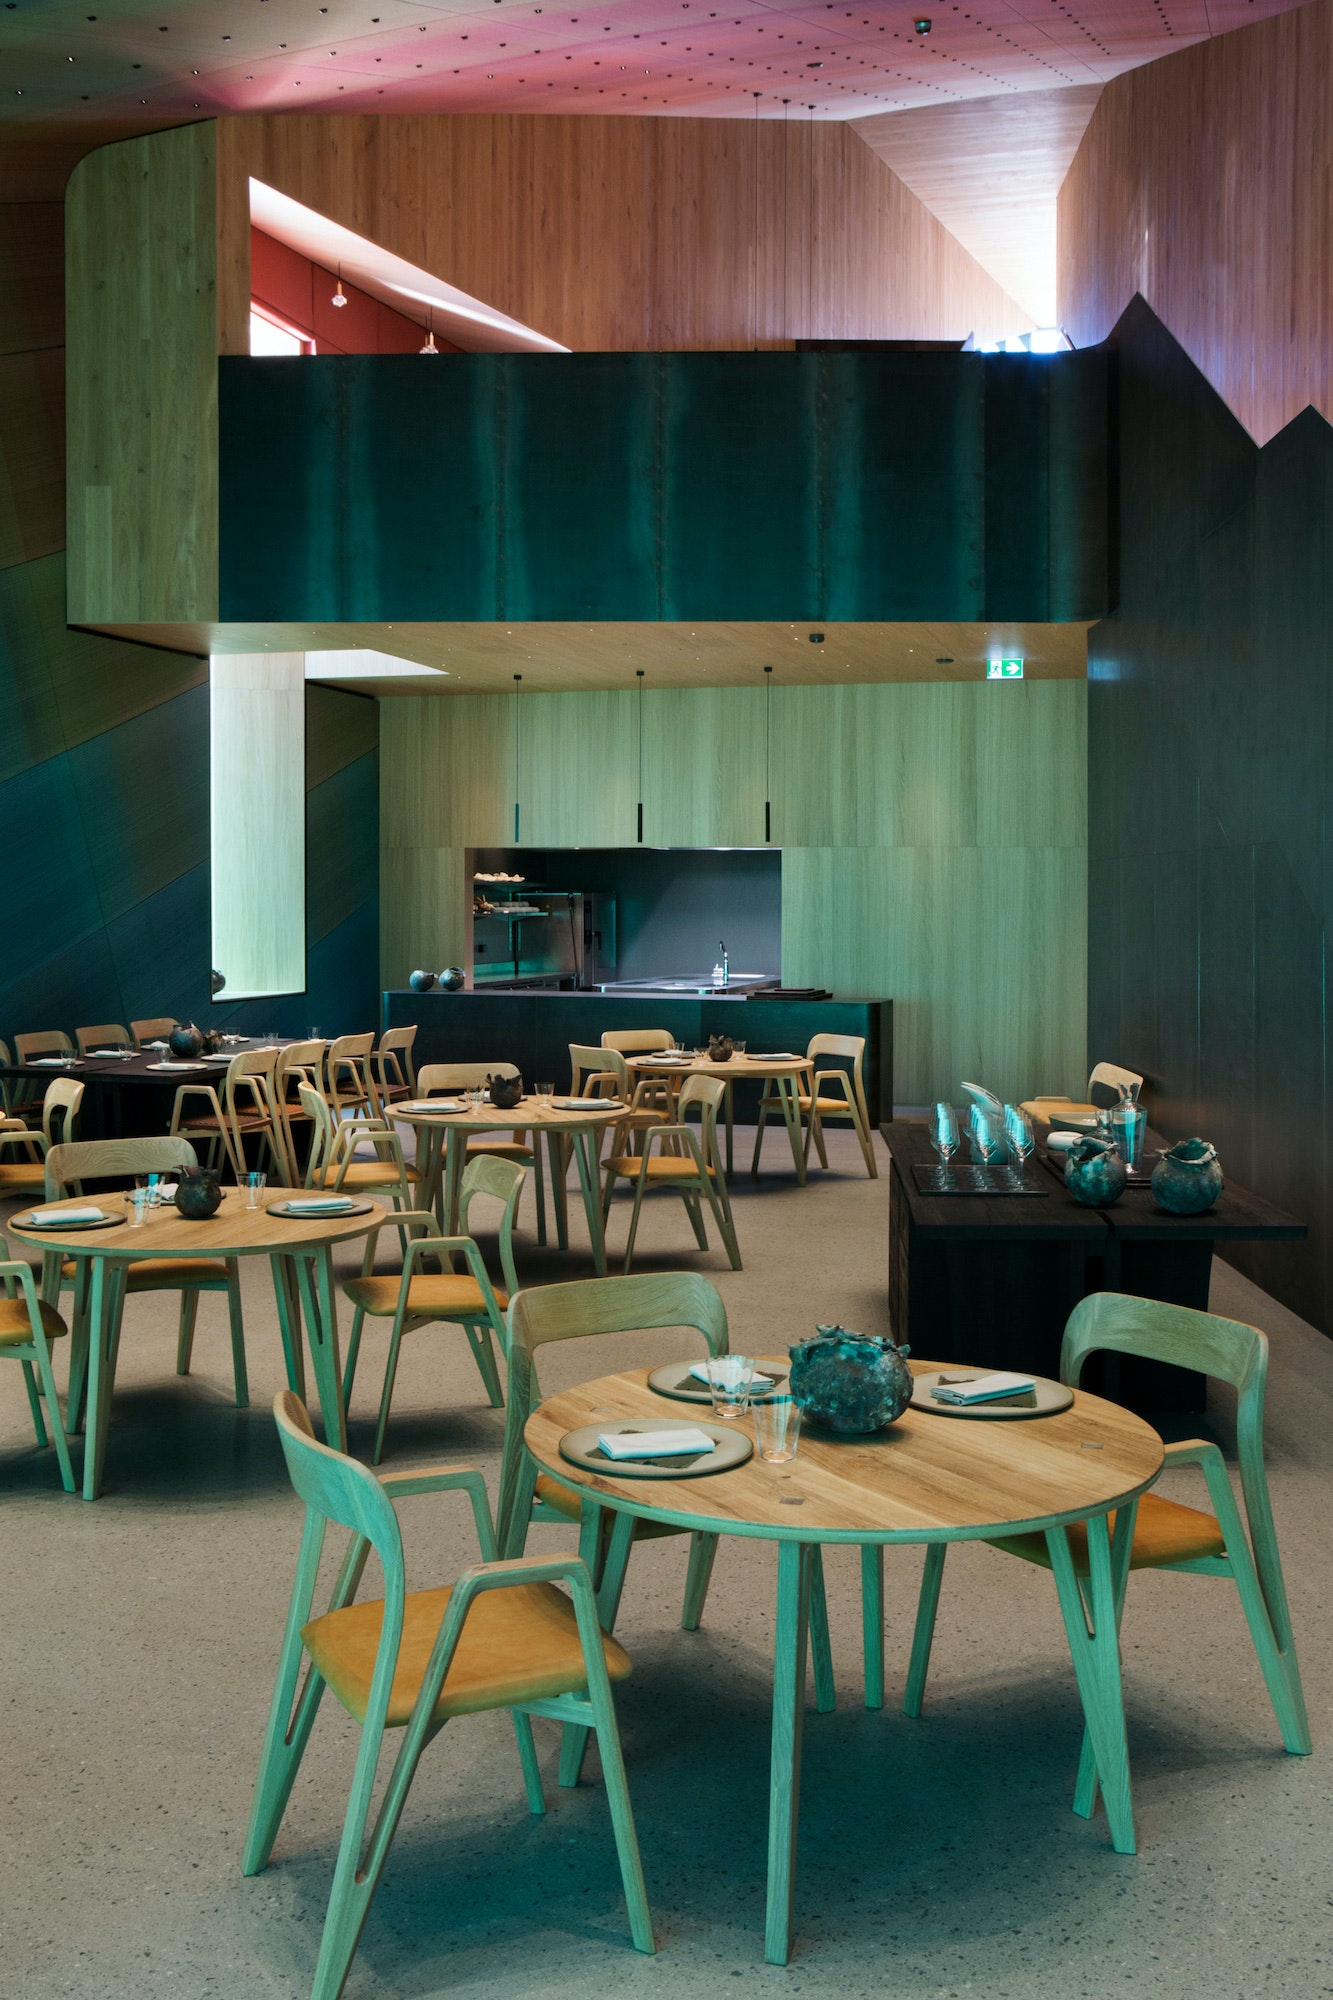 Inside the monolithic structure, the decor creates an ocean-inspired environment.